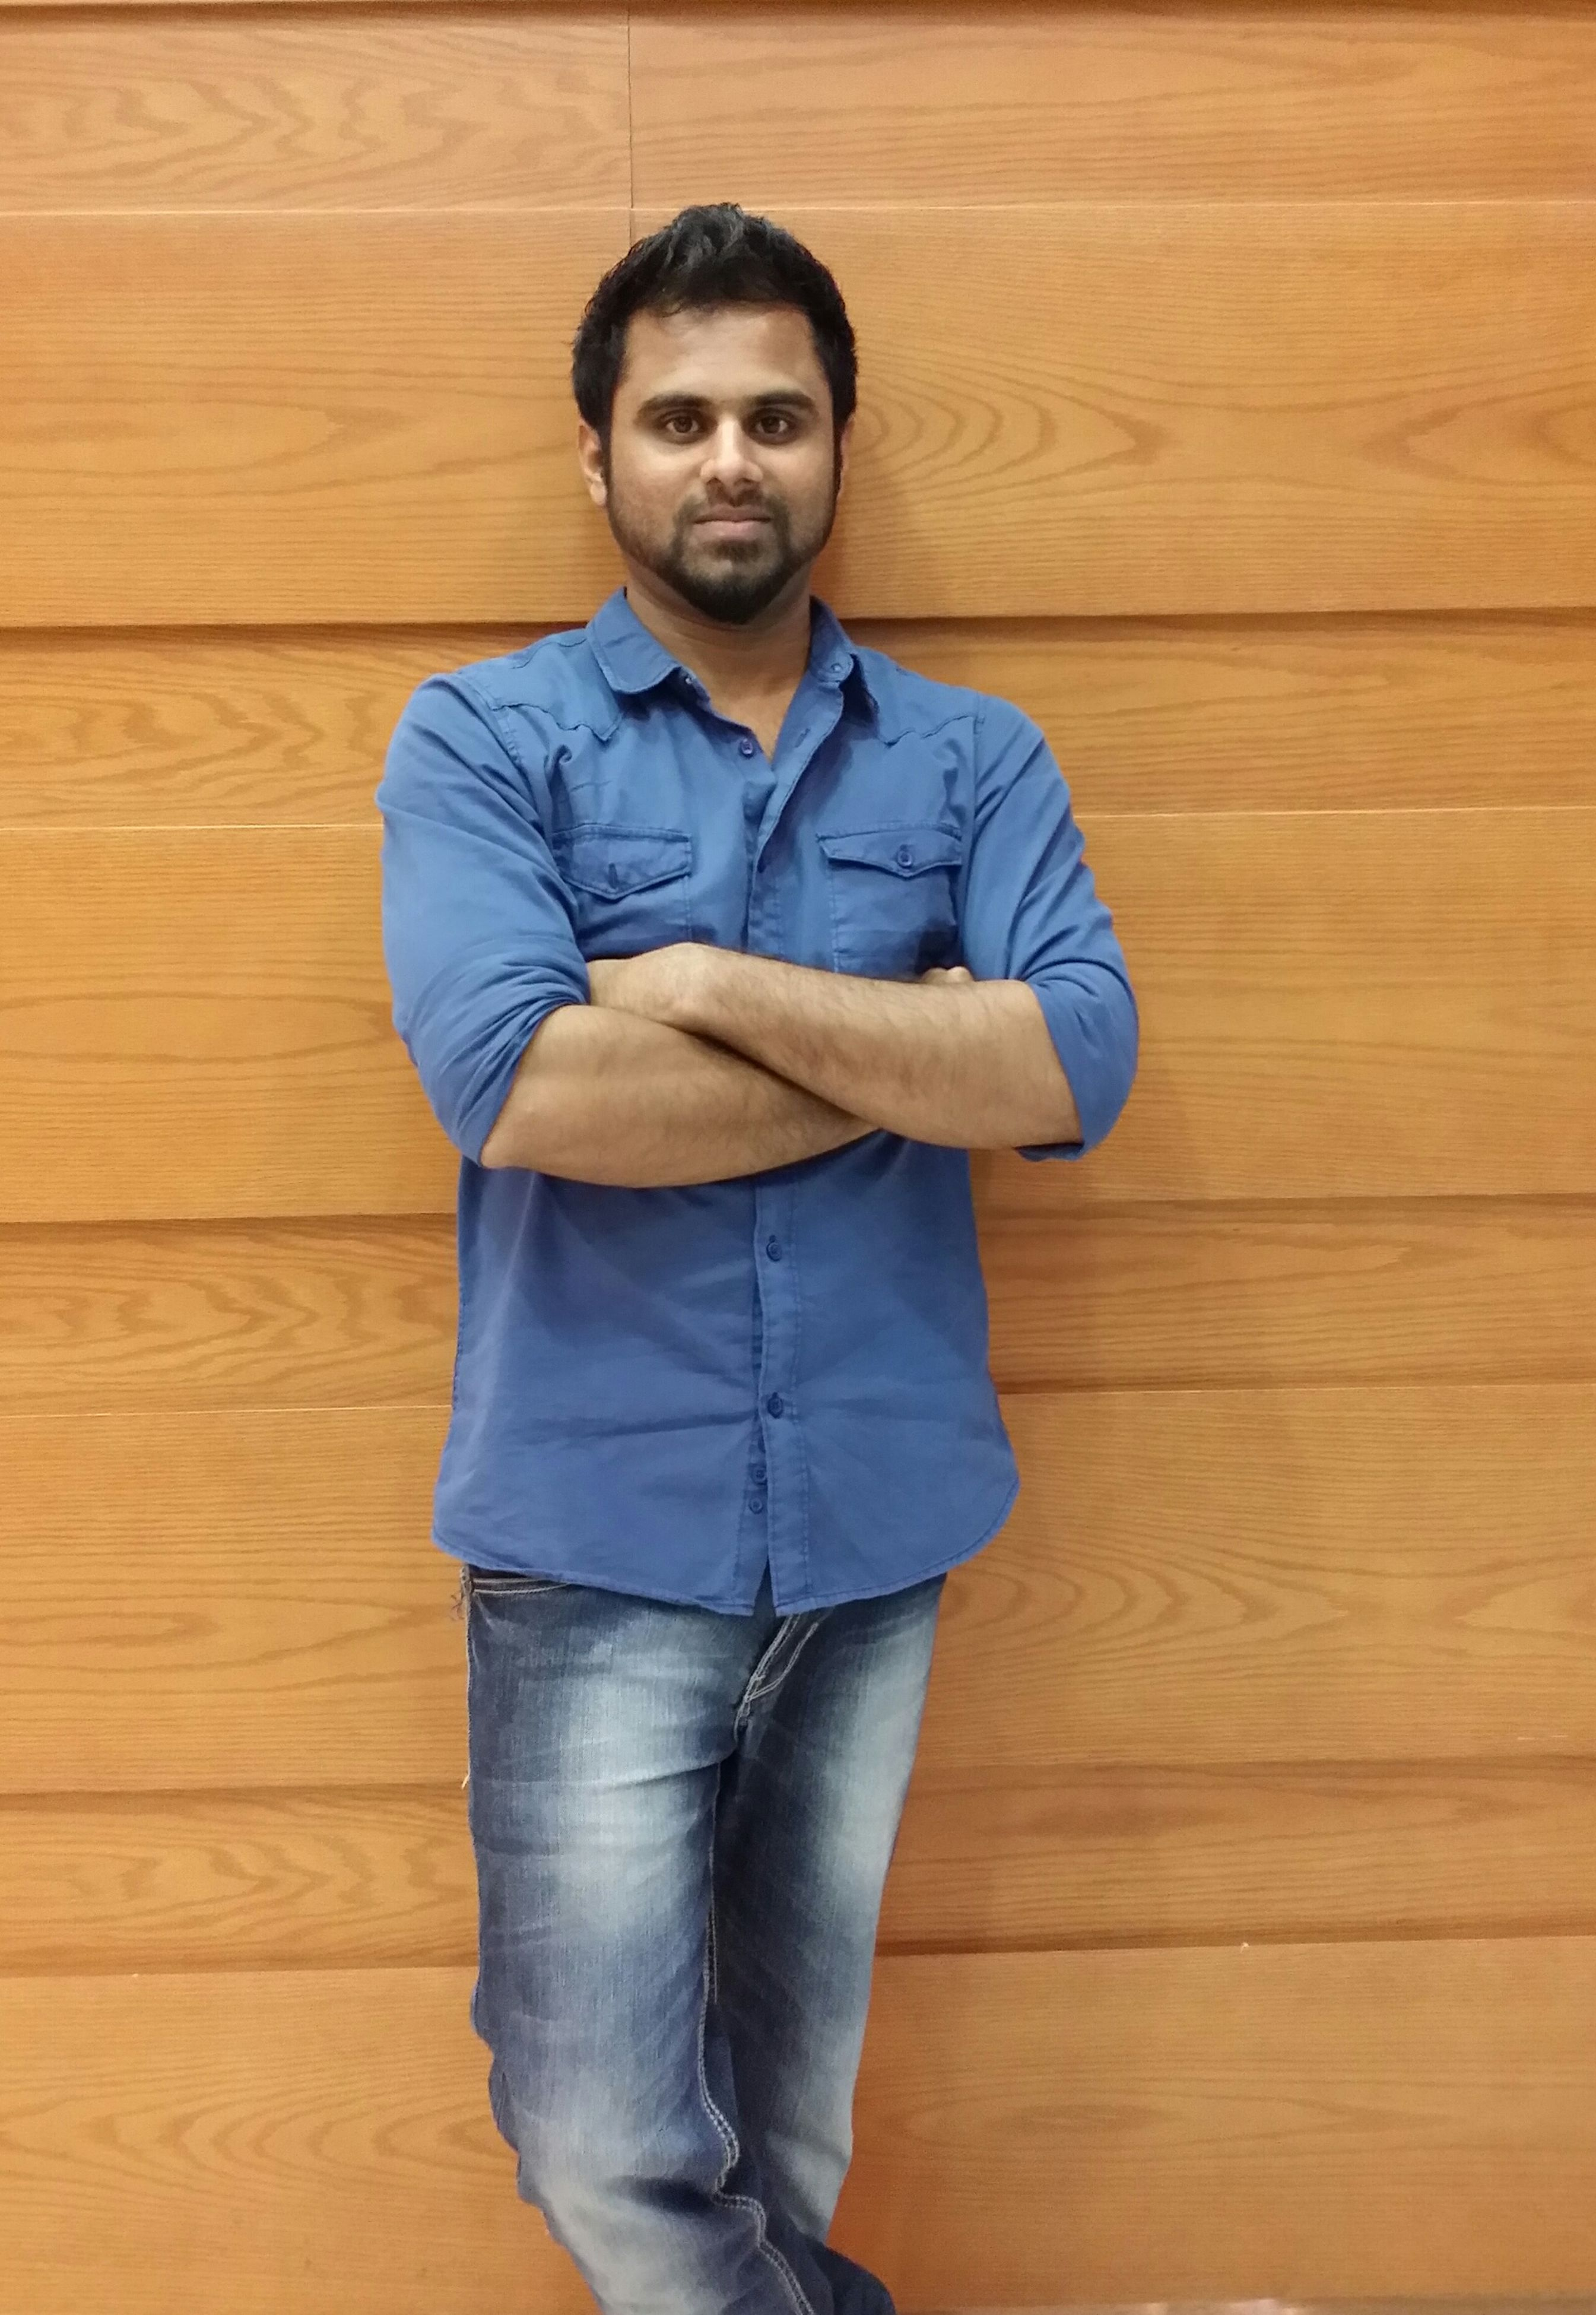 looking at camera, wood - material, portrait, person, casual clothing, lifestyles, indoors, front view, wooden, leisure activity, smiling, standing, full length, childhood, hardwood floor, happiness, boys, high angle view